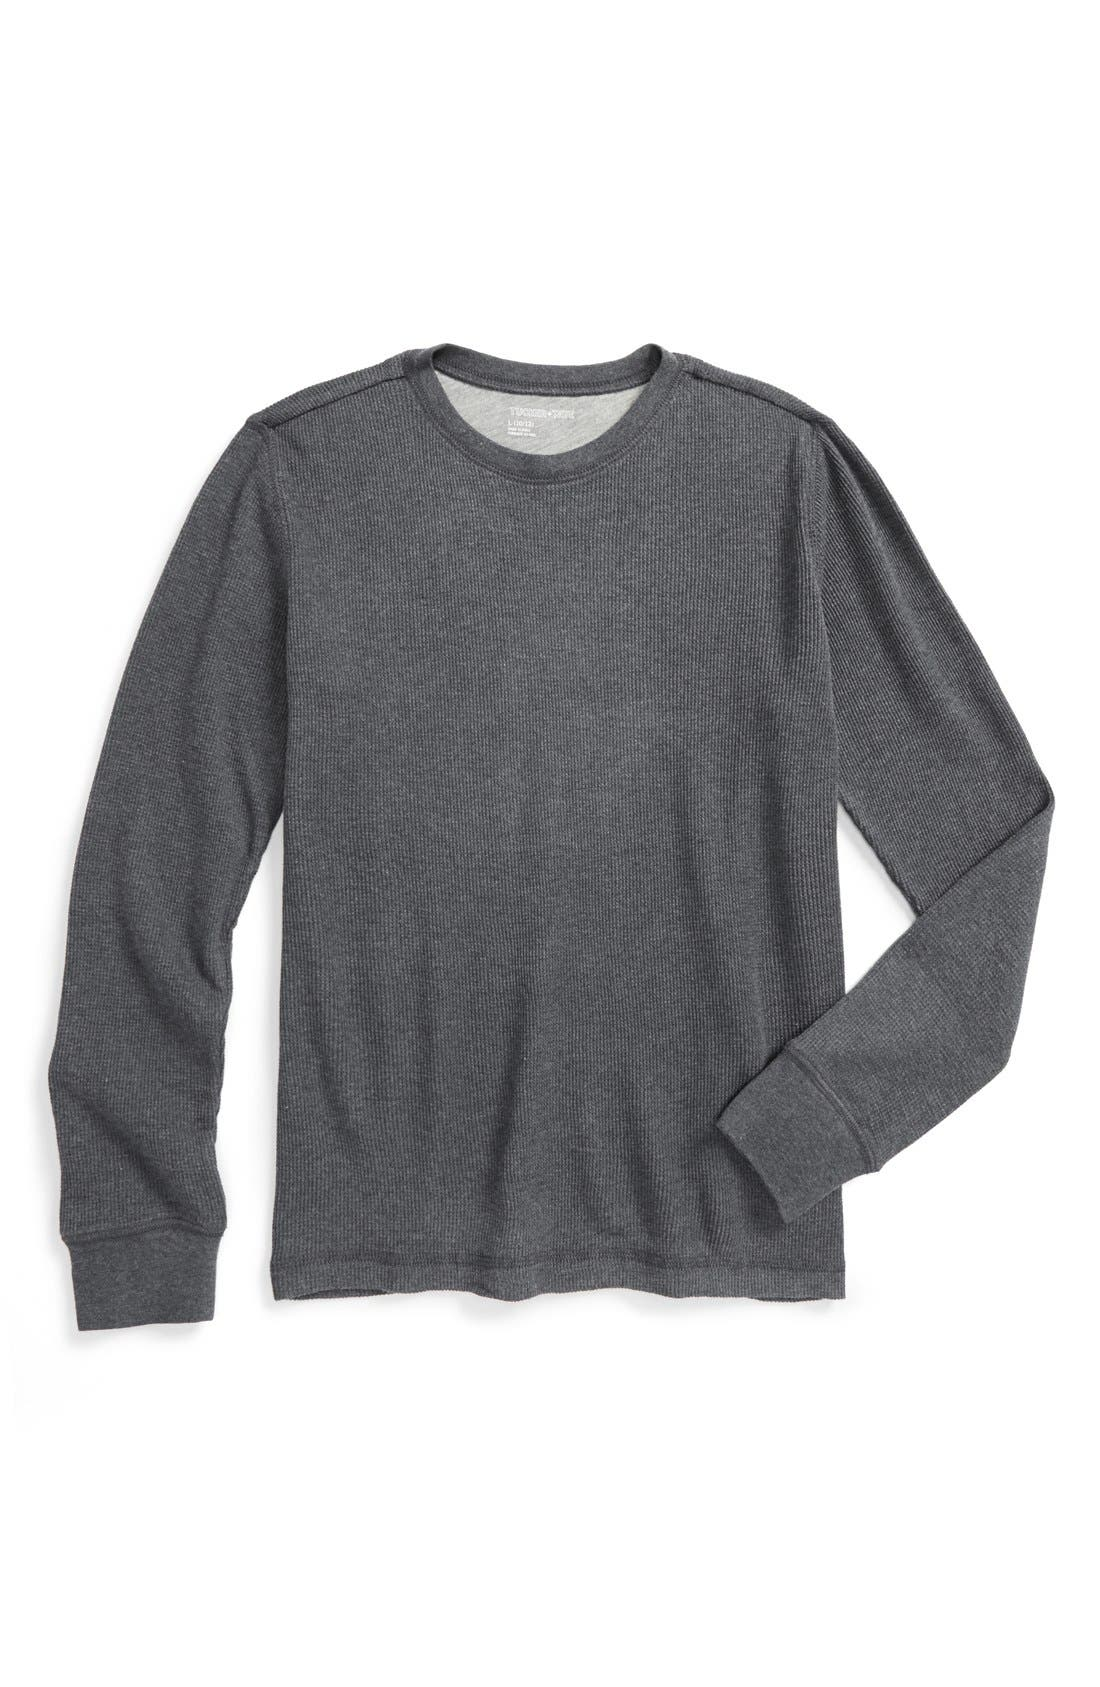 Long Sleeve Thermal T-Shirt,                             Main thumbnail 1, color,                             030